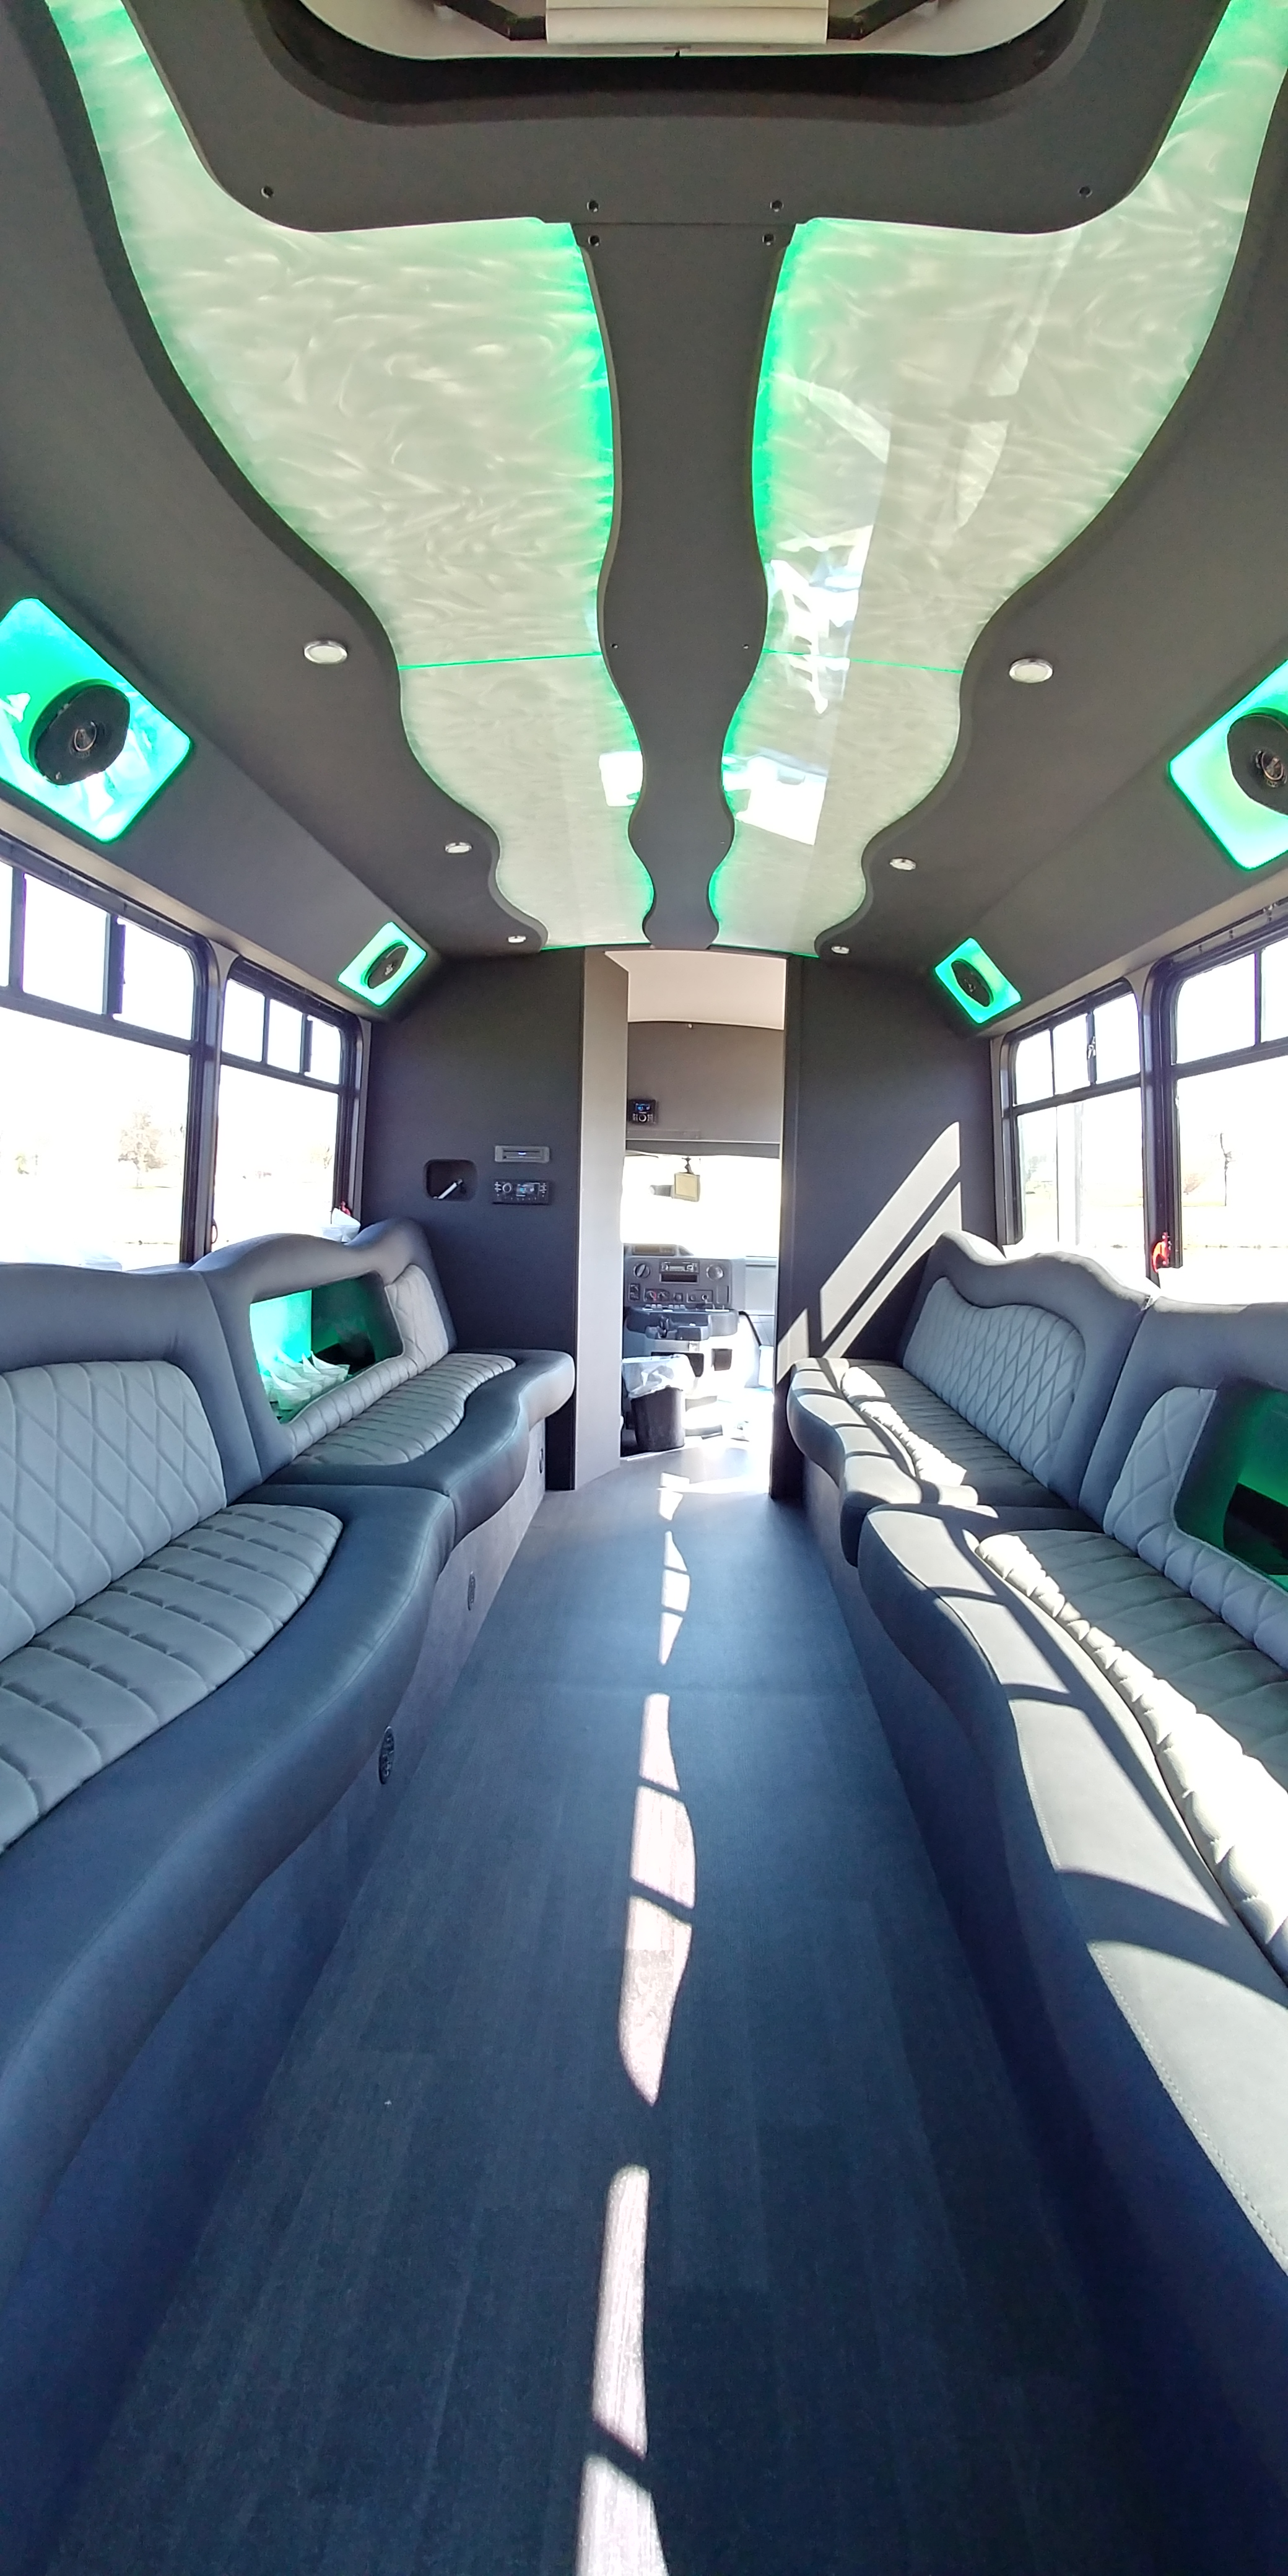 18 Passenger Luxury Limo Bus Interior 5